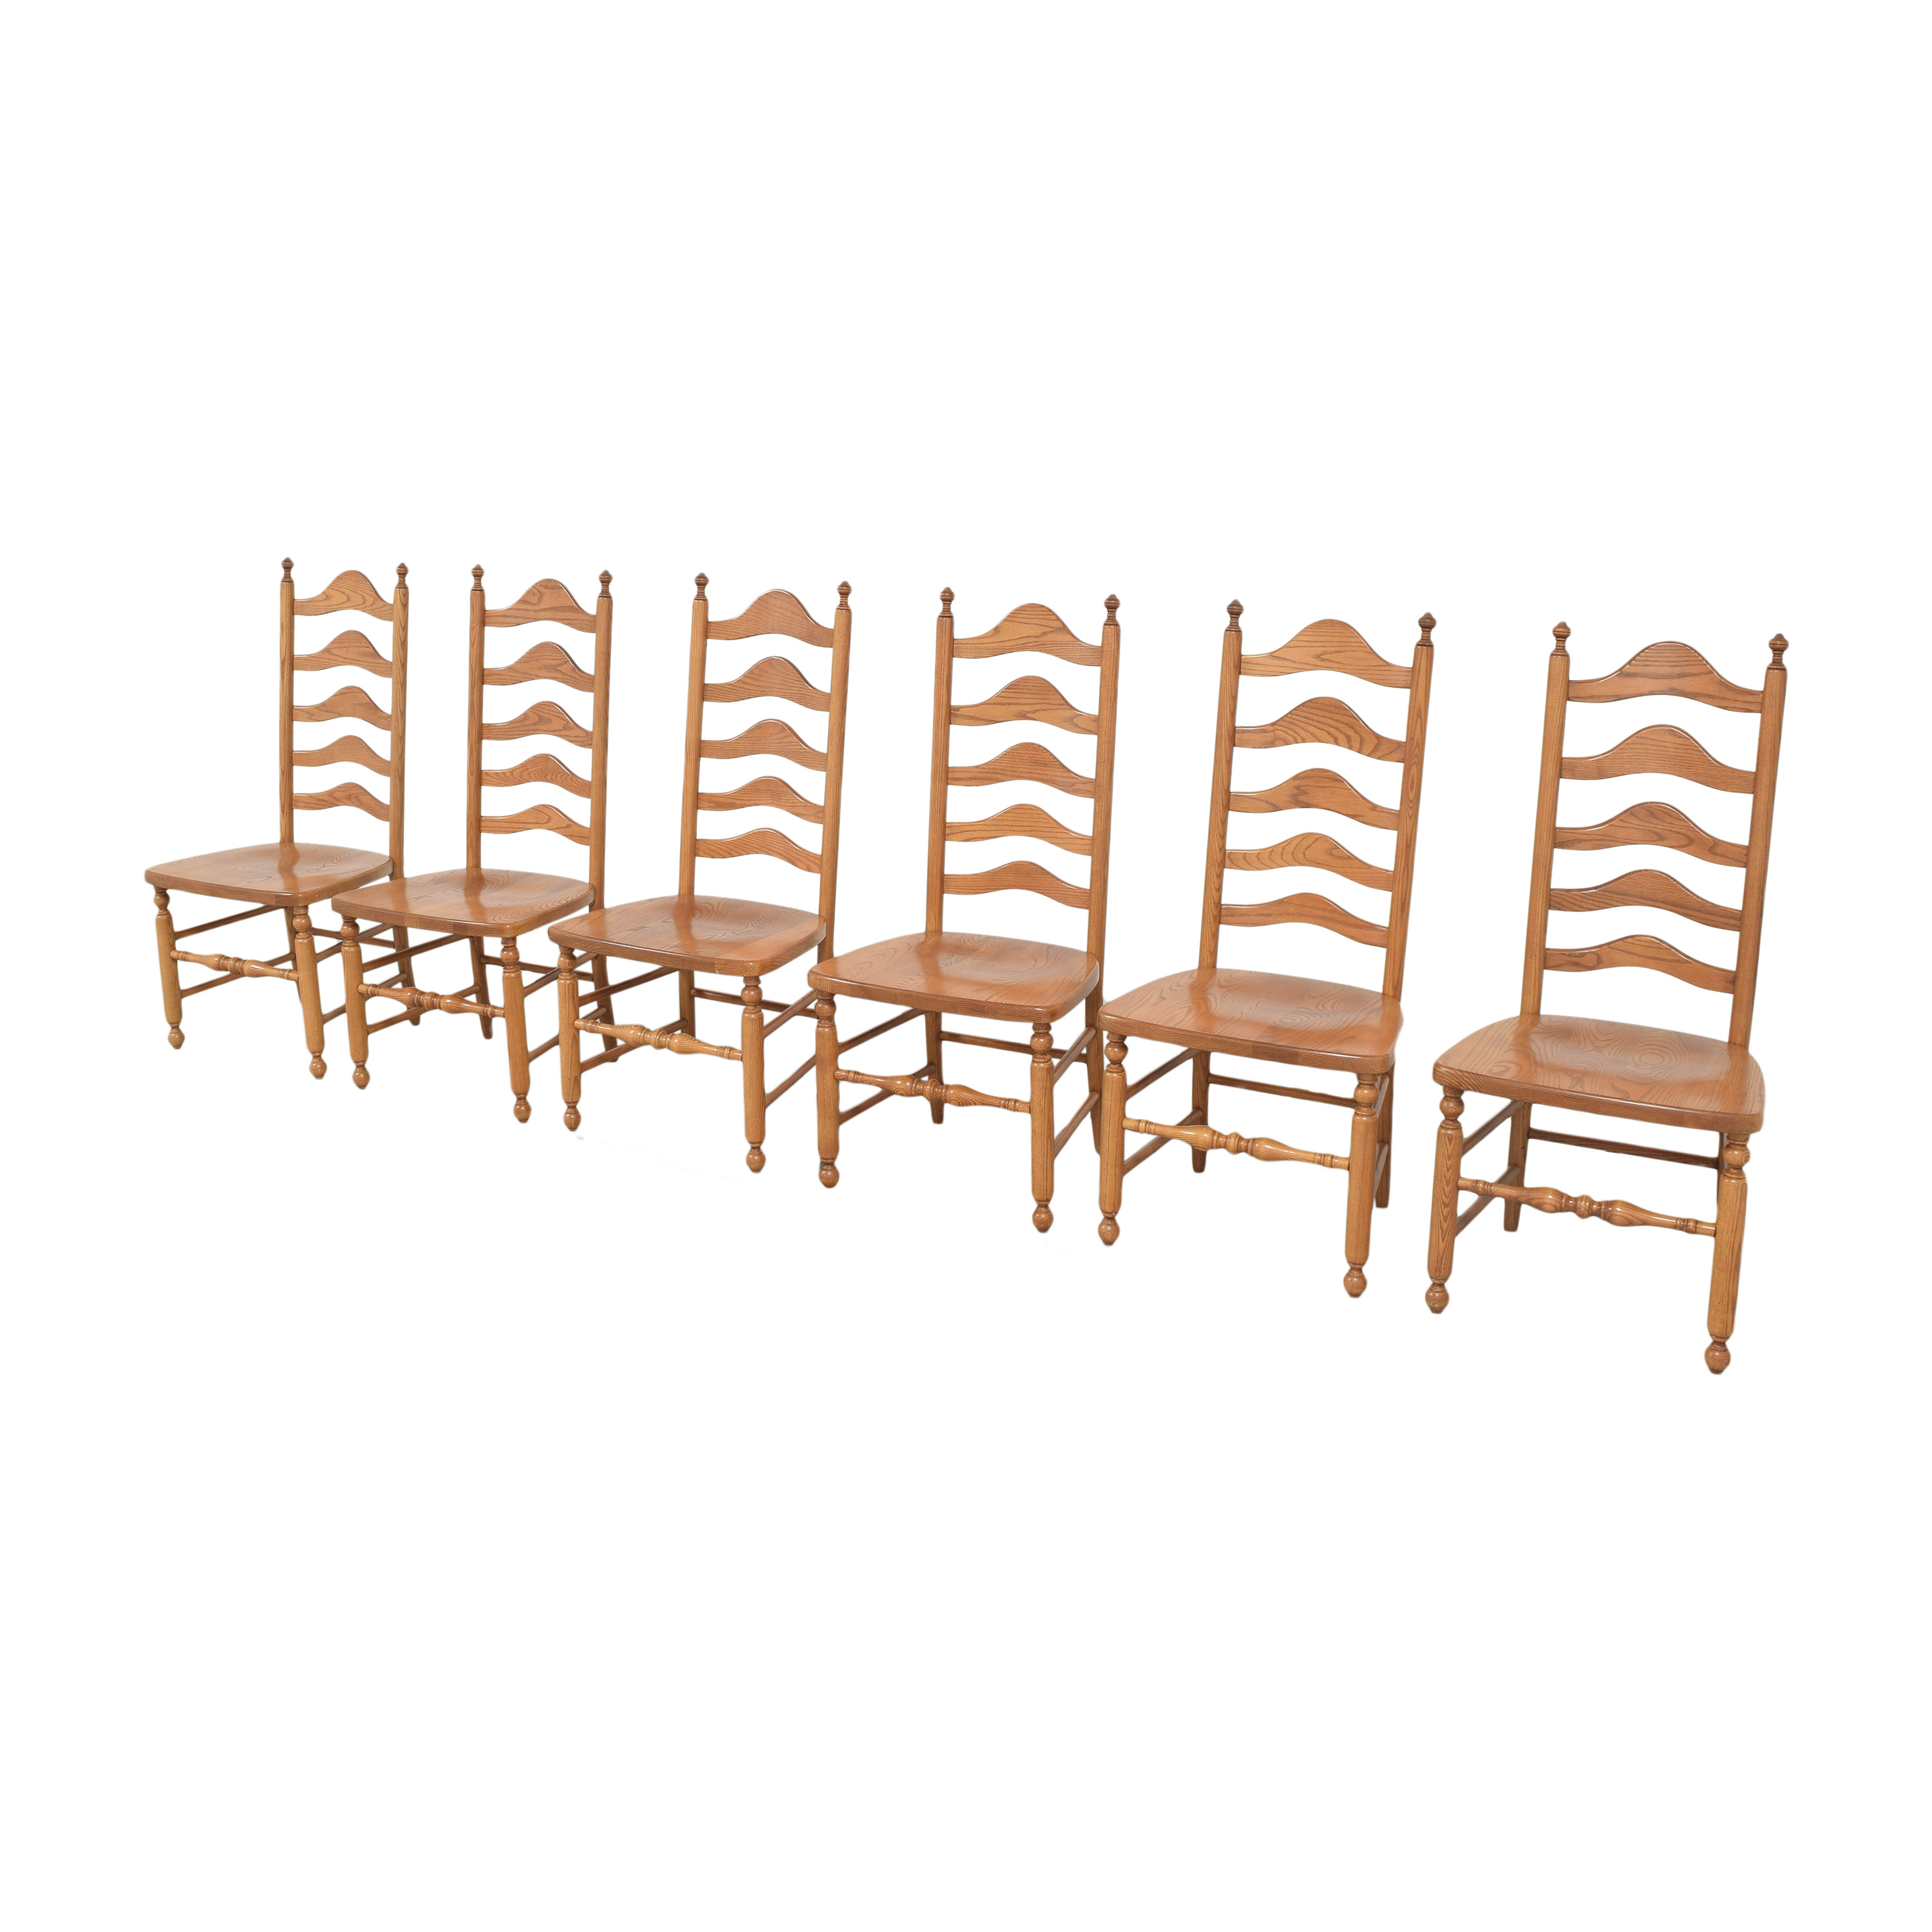 S. Bent & Bros Ladderback Dining Chairs / Dining Chairs